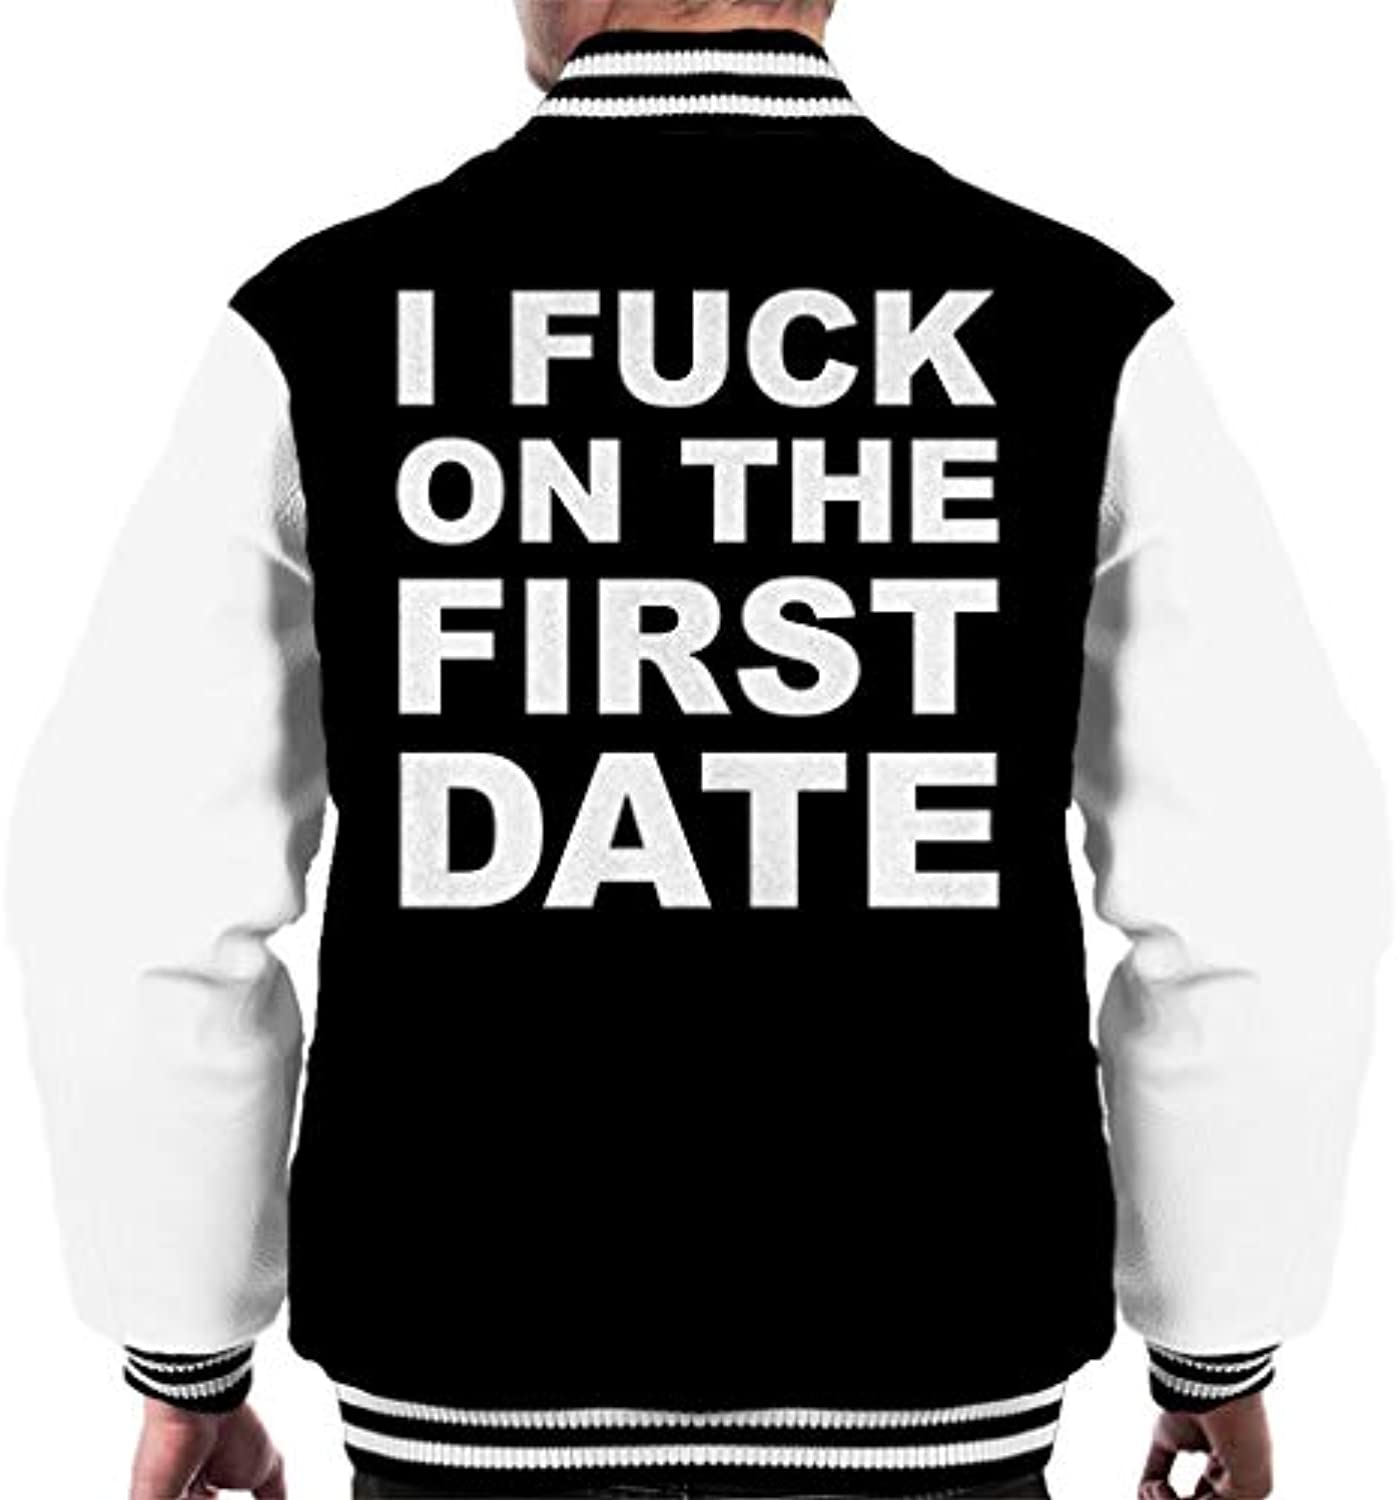 I Fuck On On Fuck The First Date Men s Varsity Jacket 21eacb ... 6d86e60c8d6